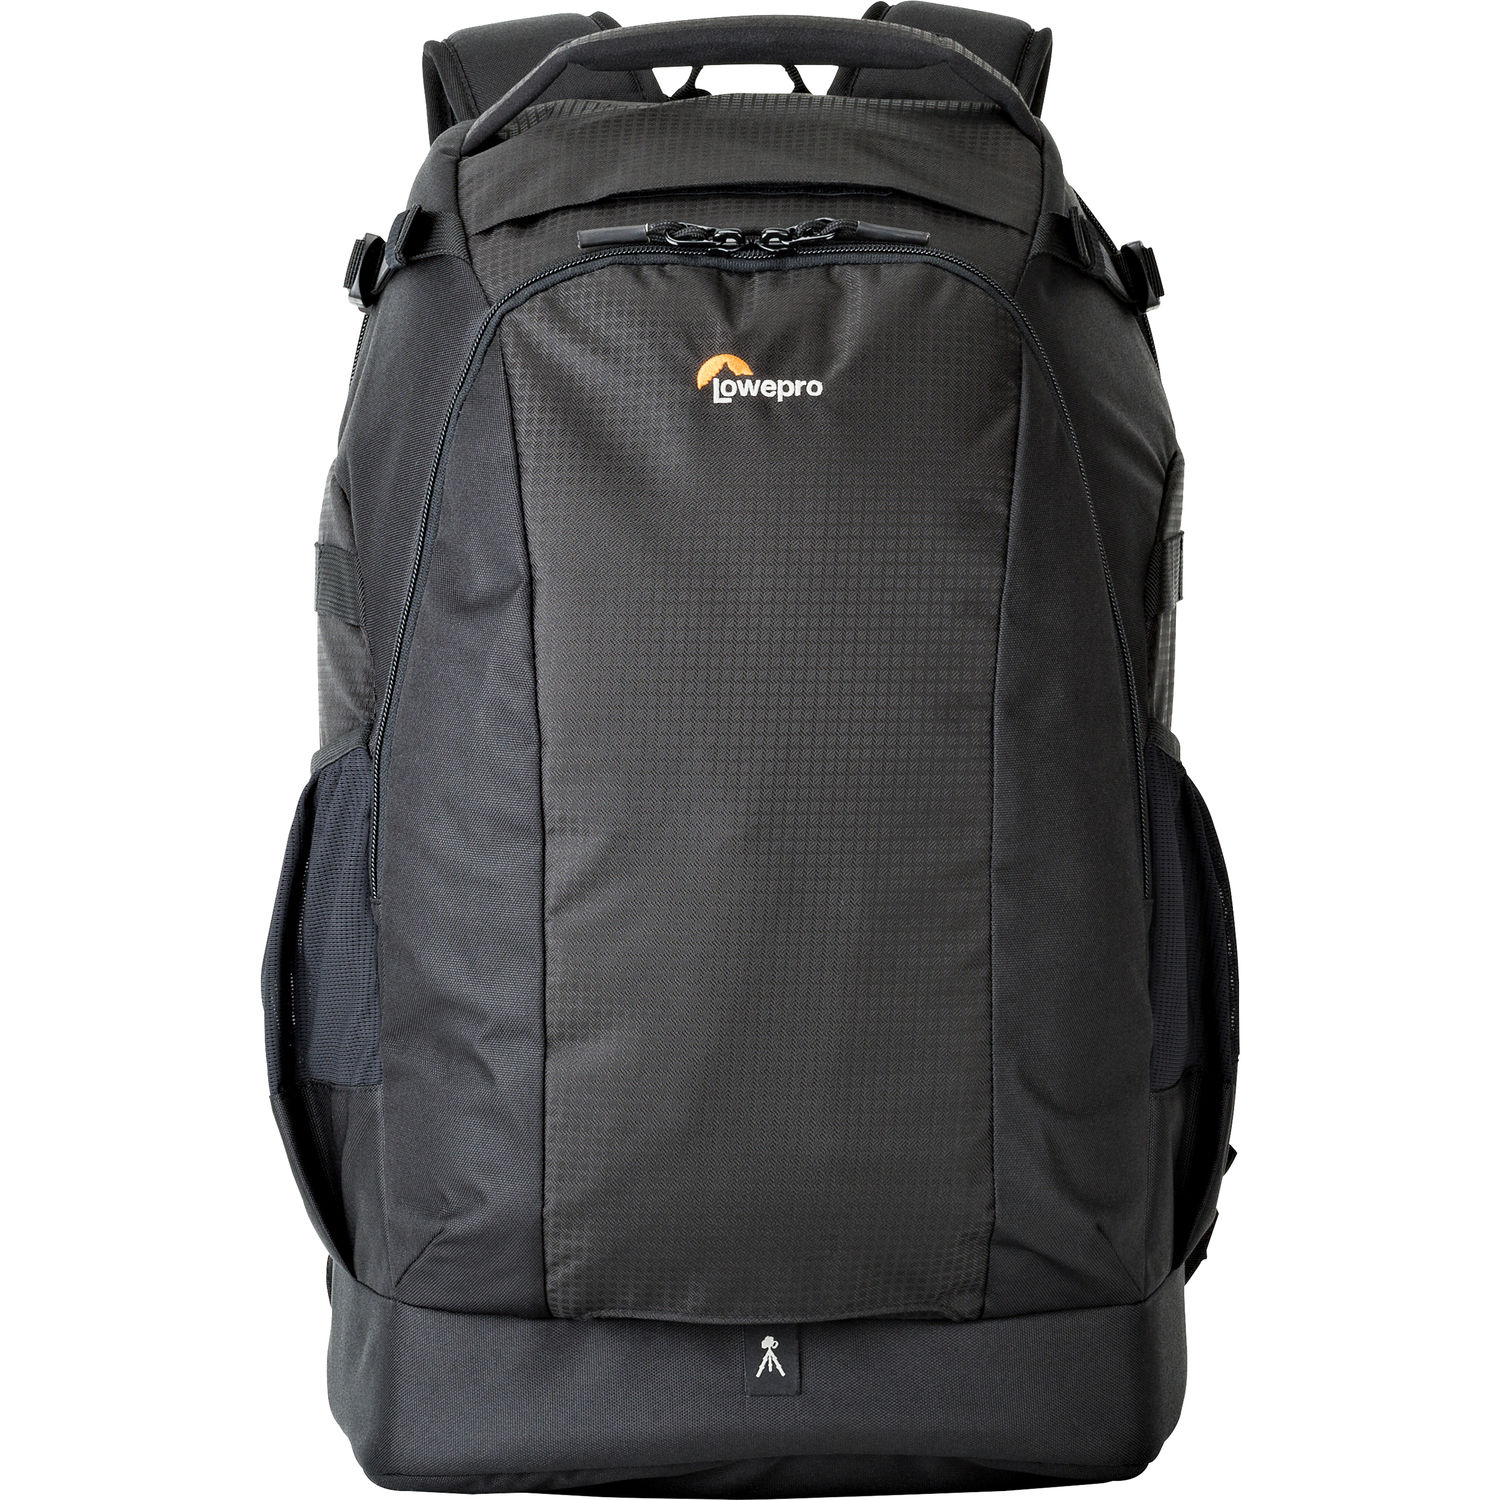 Lowepro Flipside 500 AW II Backpack - Black